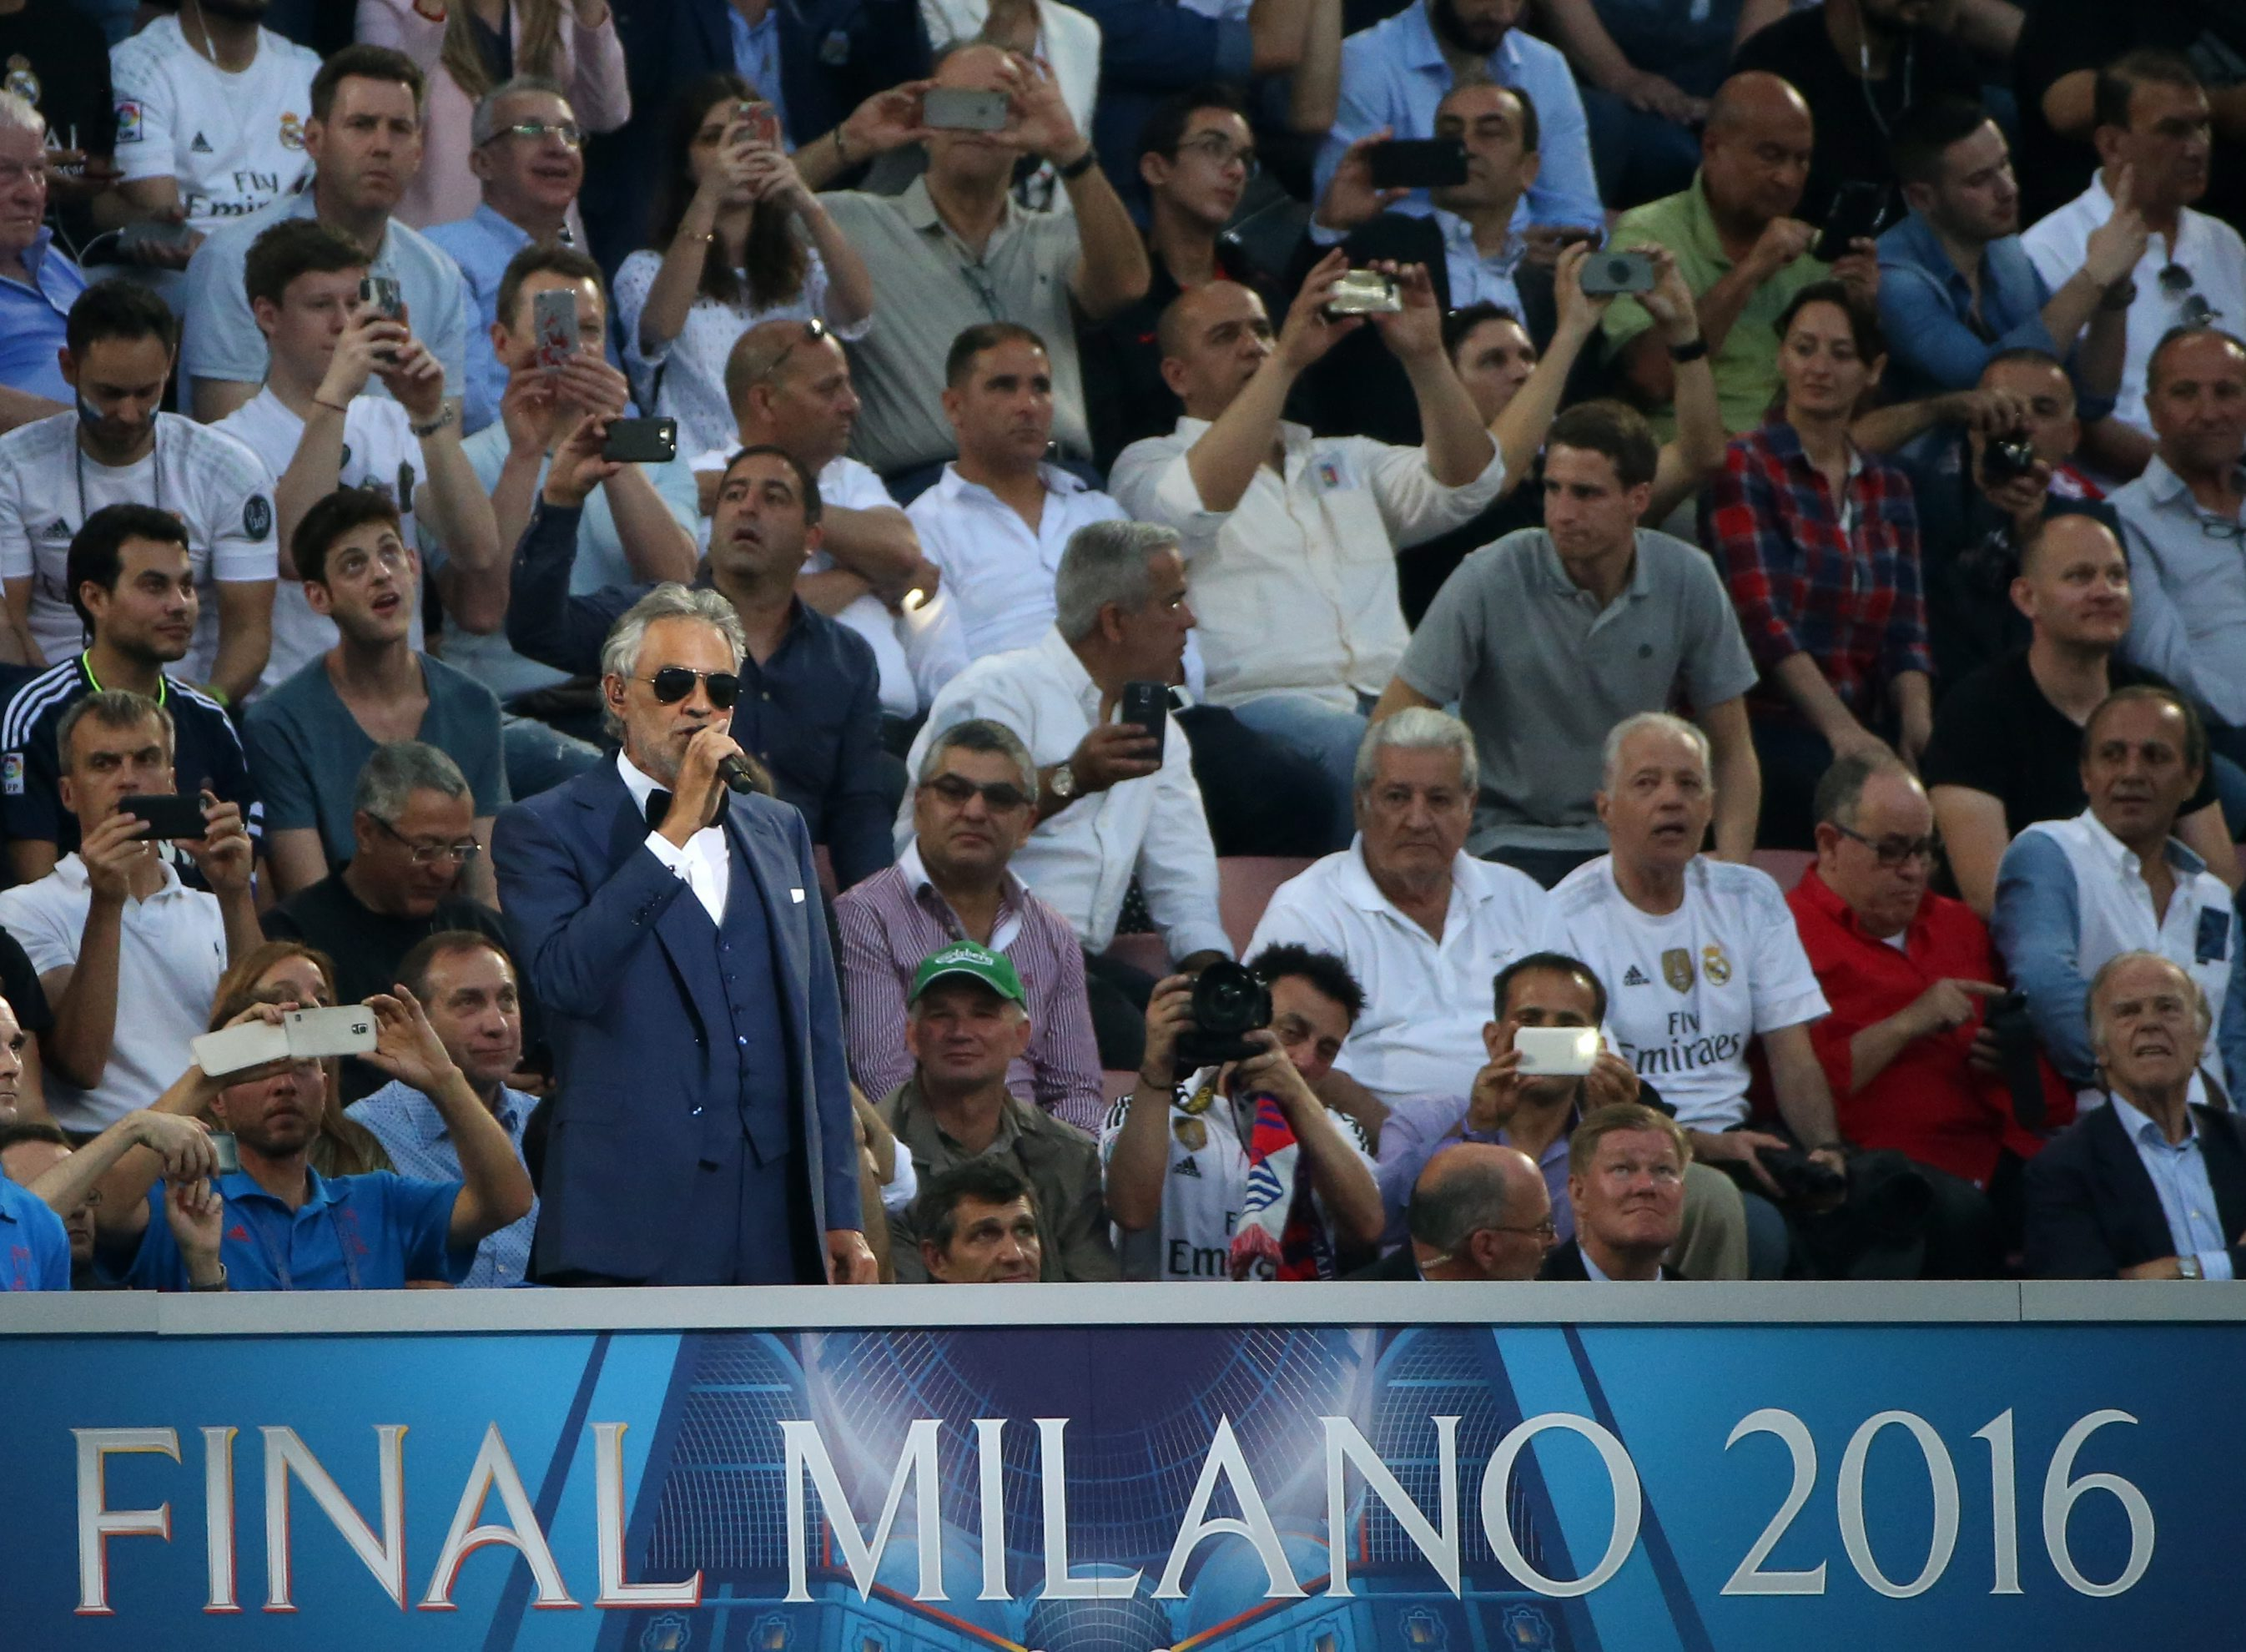 . Milan (Italy), 28/05/2016.- Italian tenor Andrea Bocelli performs before the UEFA Champions League Final 2016 between Real Madrid and Atletico Madrid at the Giuseppe Meazza stadium in Milan, Italy, 28 May 2016. (Liga de Campeones, Italia) EFE/EPA/OLIVER WEIKEN